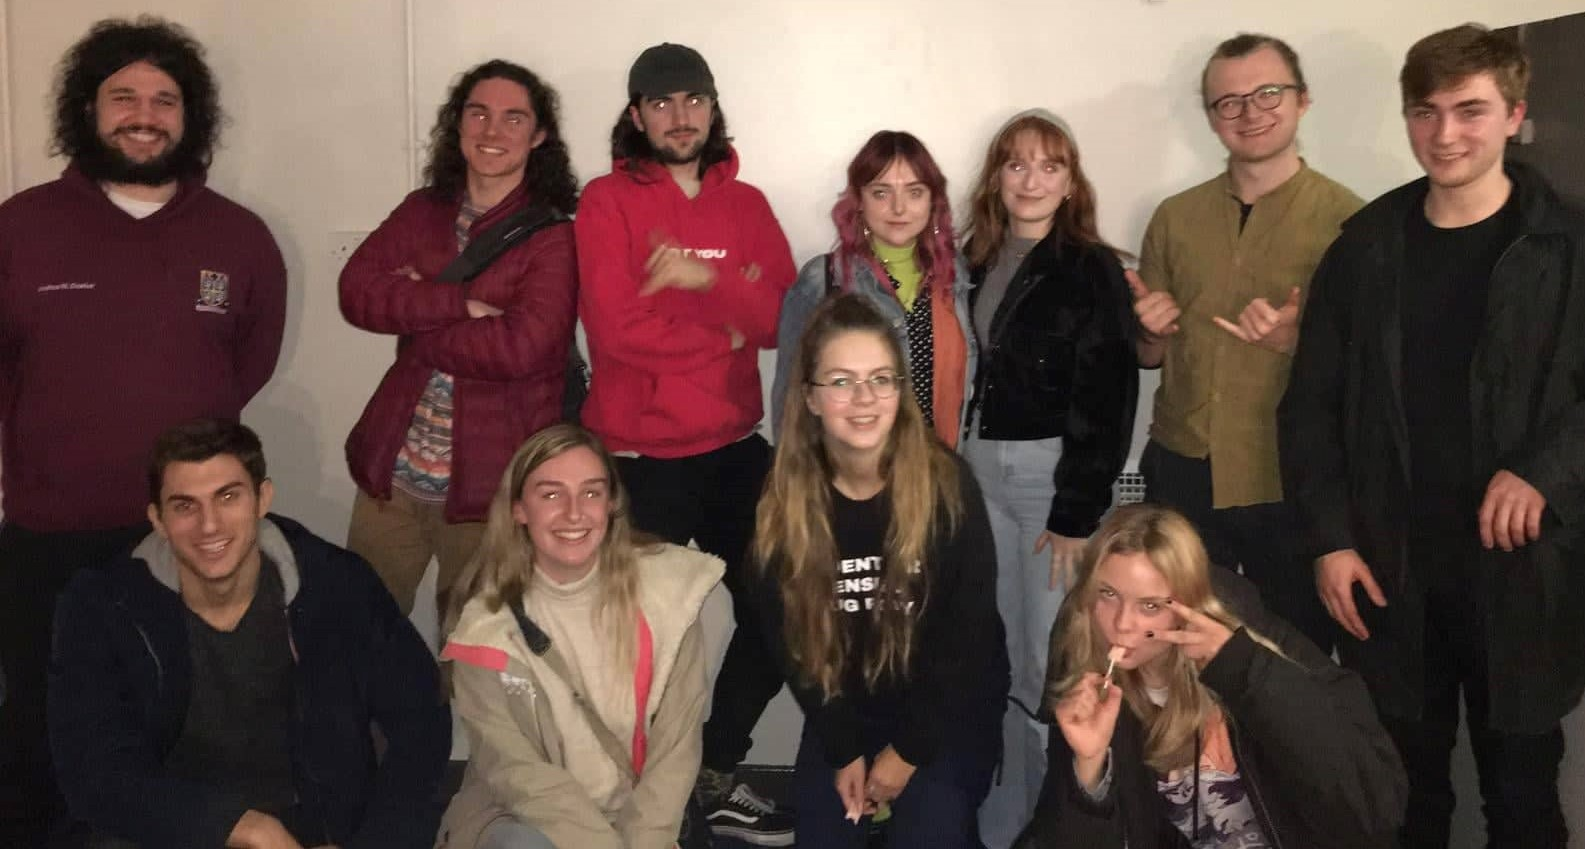 Members of SSDP Durham standing together, after their first meeting of the year.